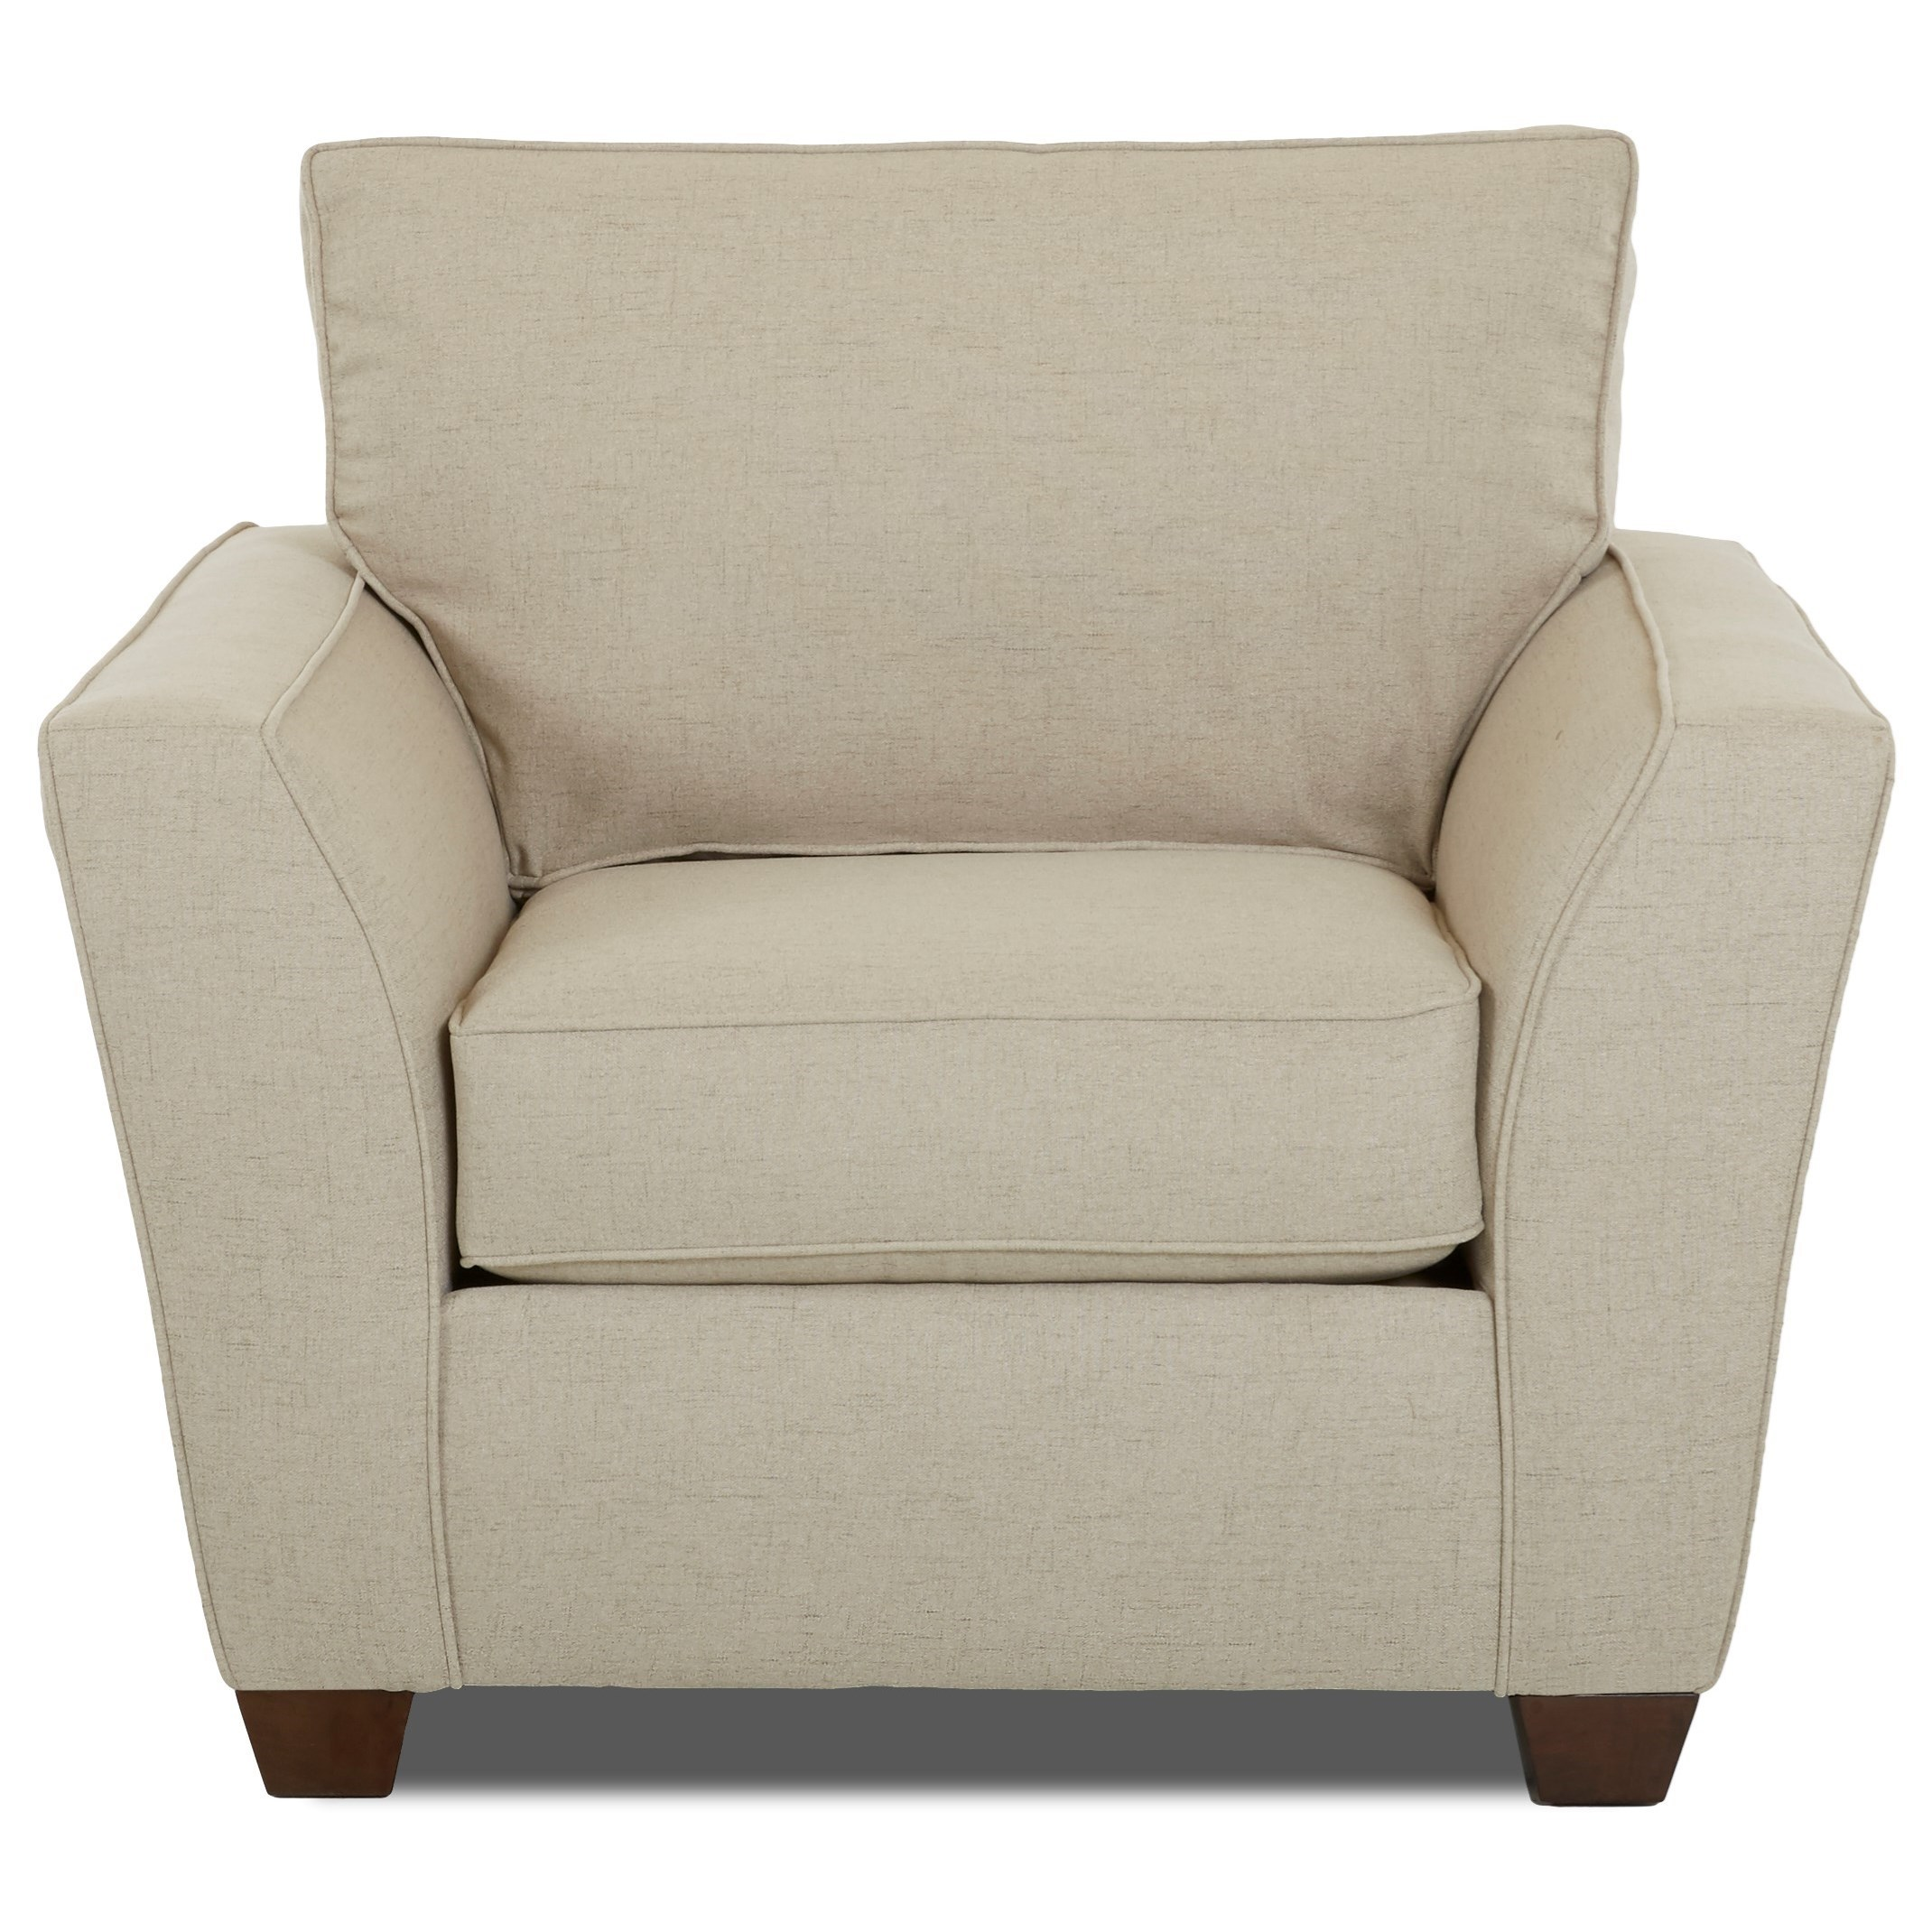 Klaussner Kent Chair - Item Number: K75600 C-LUCAS HEMP